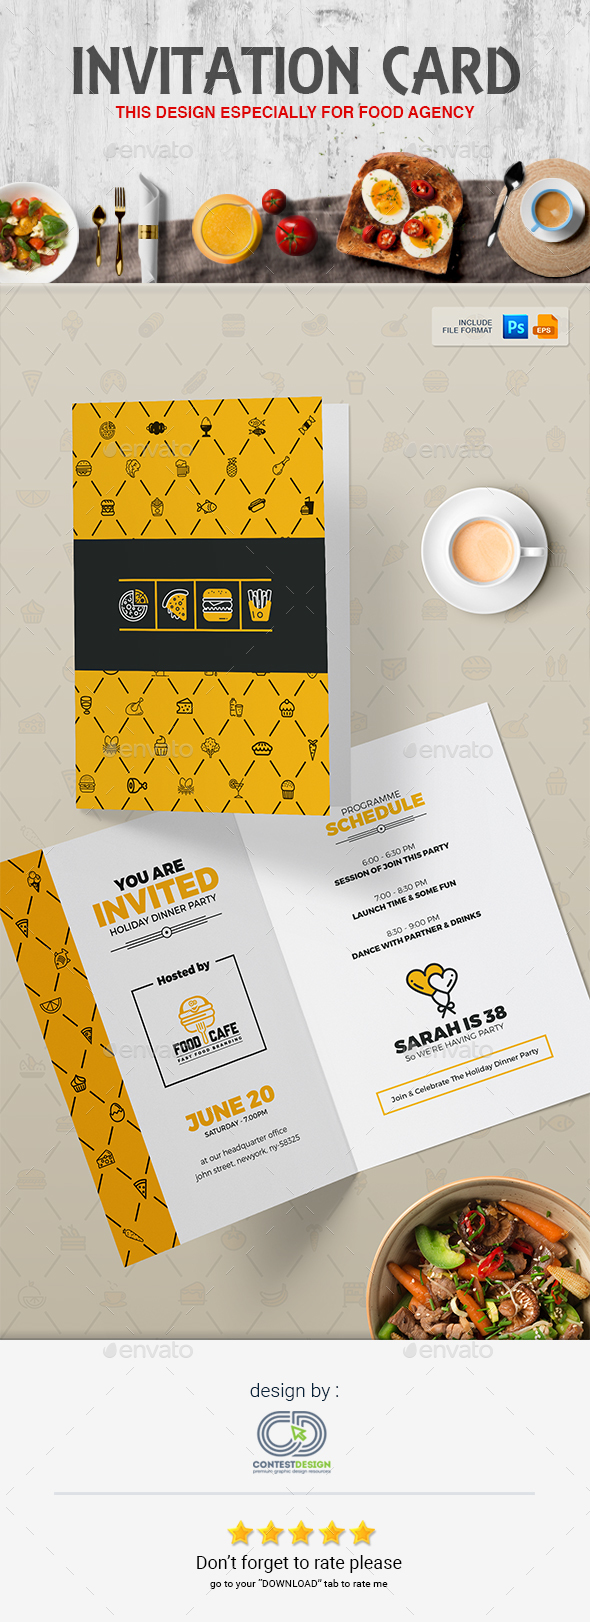 Invitation Card Design Template for Fast Food / Restaurants / Cafe